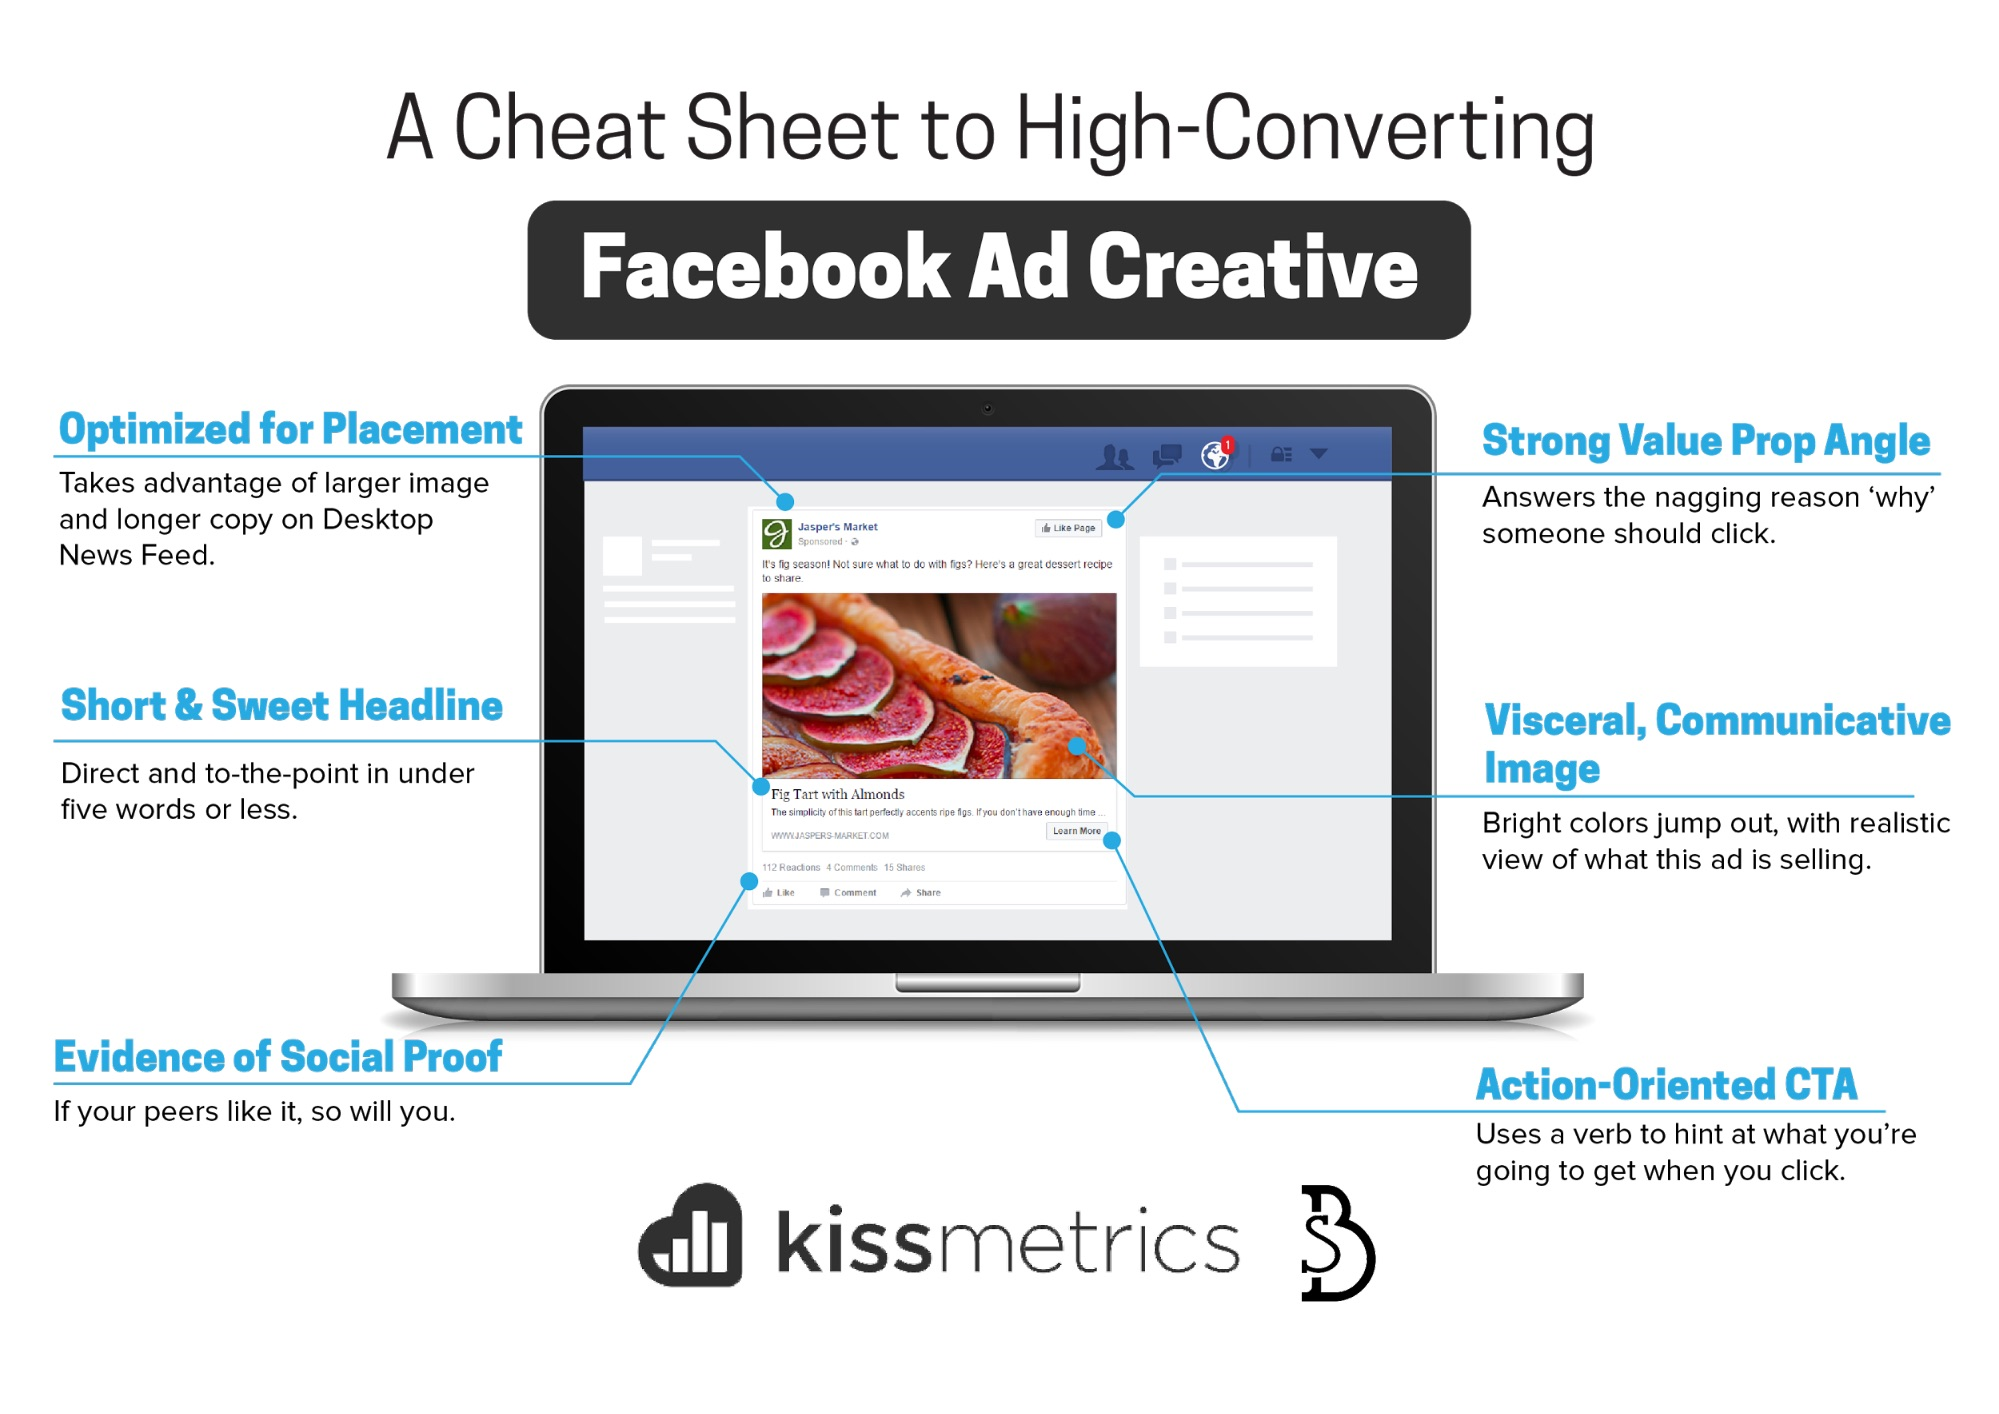 A Cheat Sheet To High Converting Facebook Ad Creative